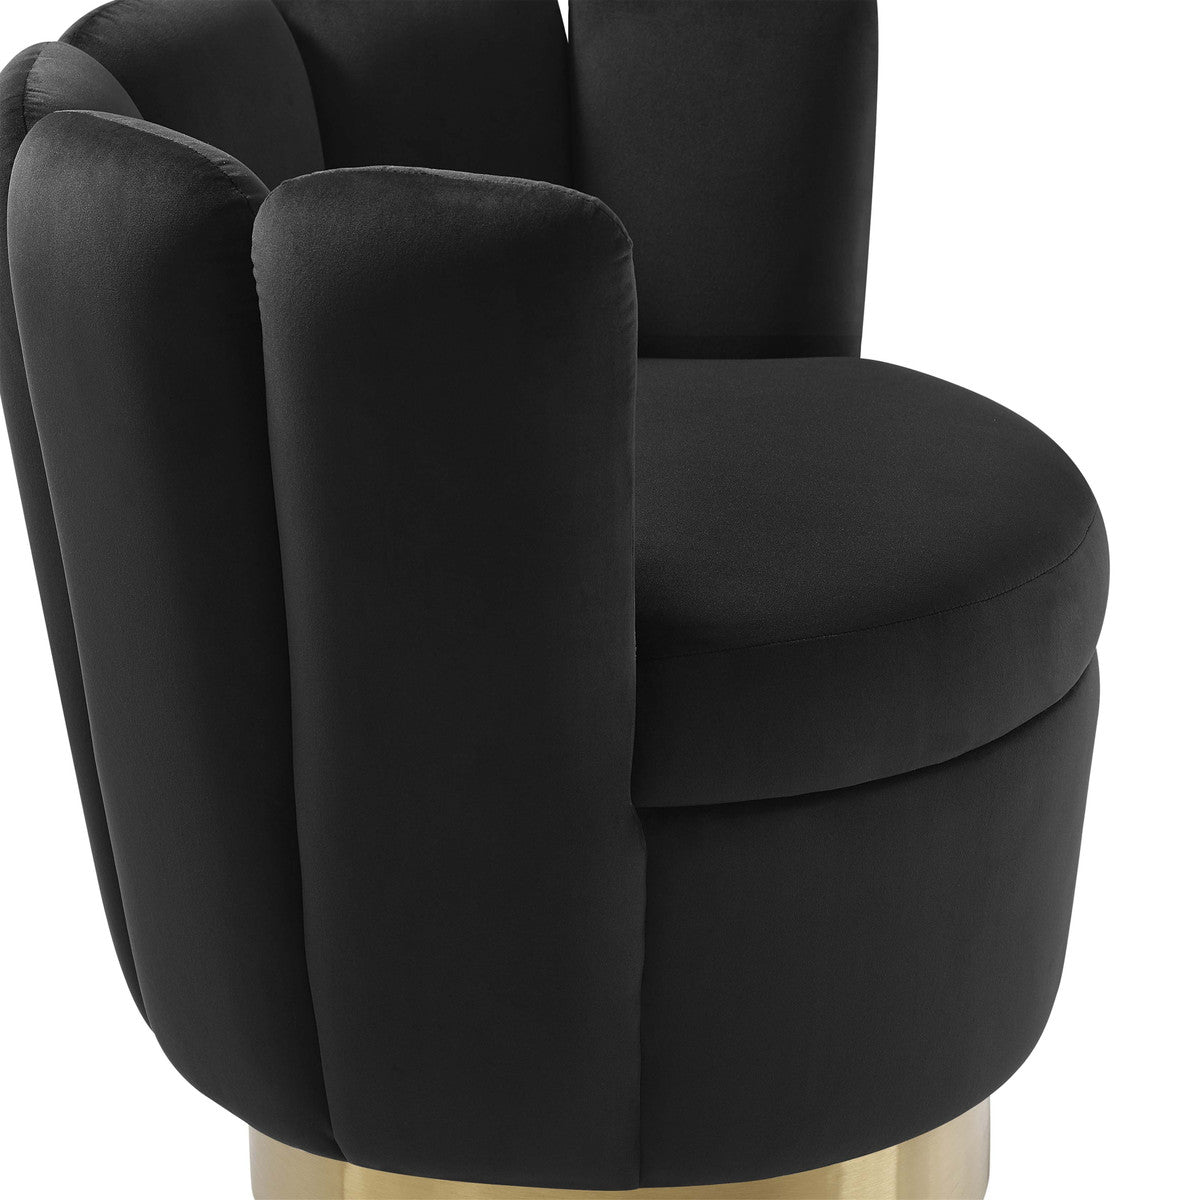 Yad Black Velvet Swivel Chair